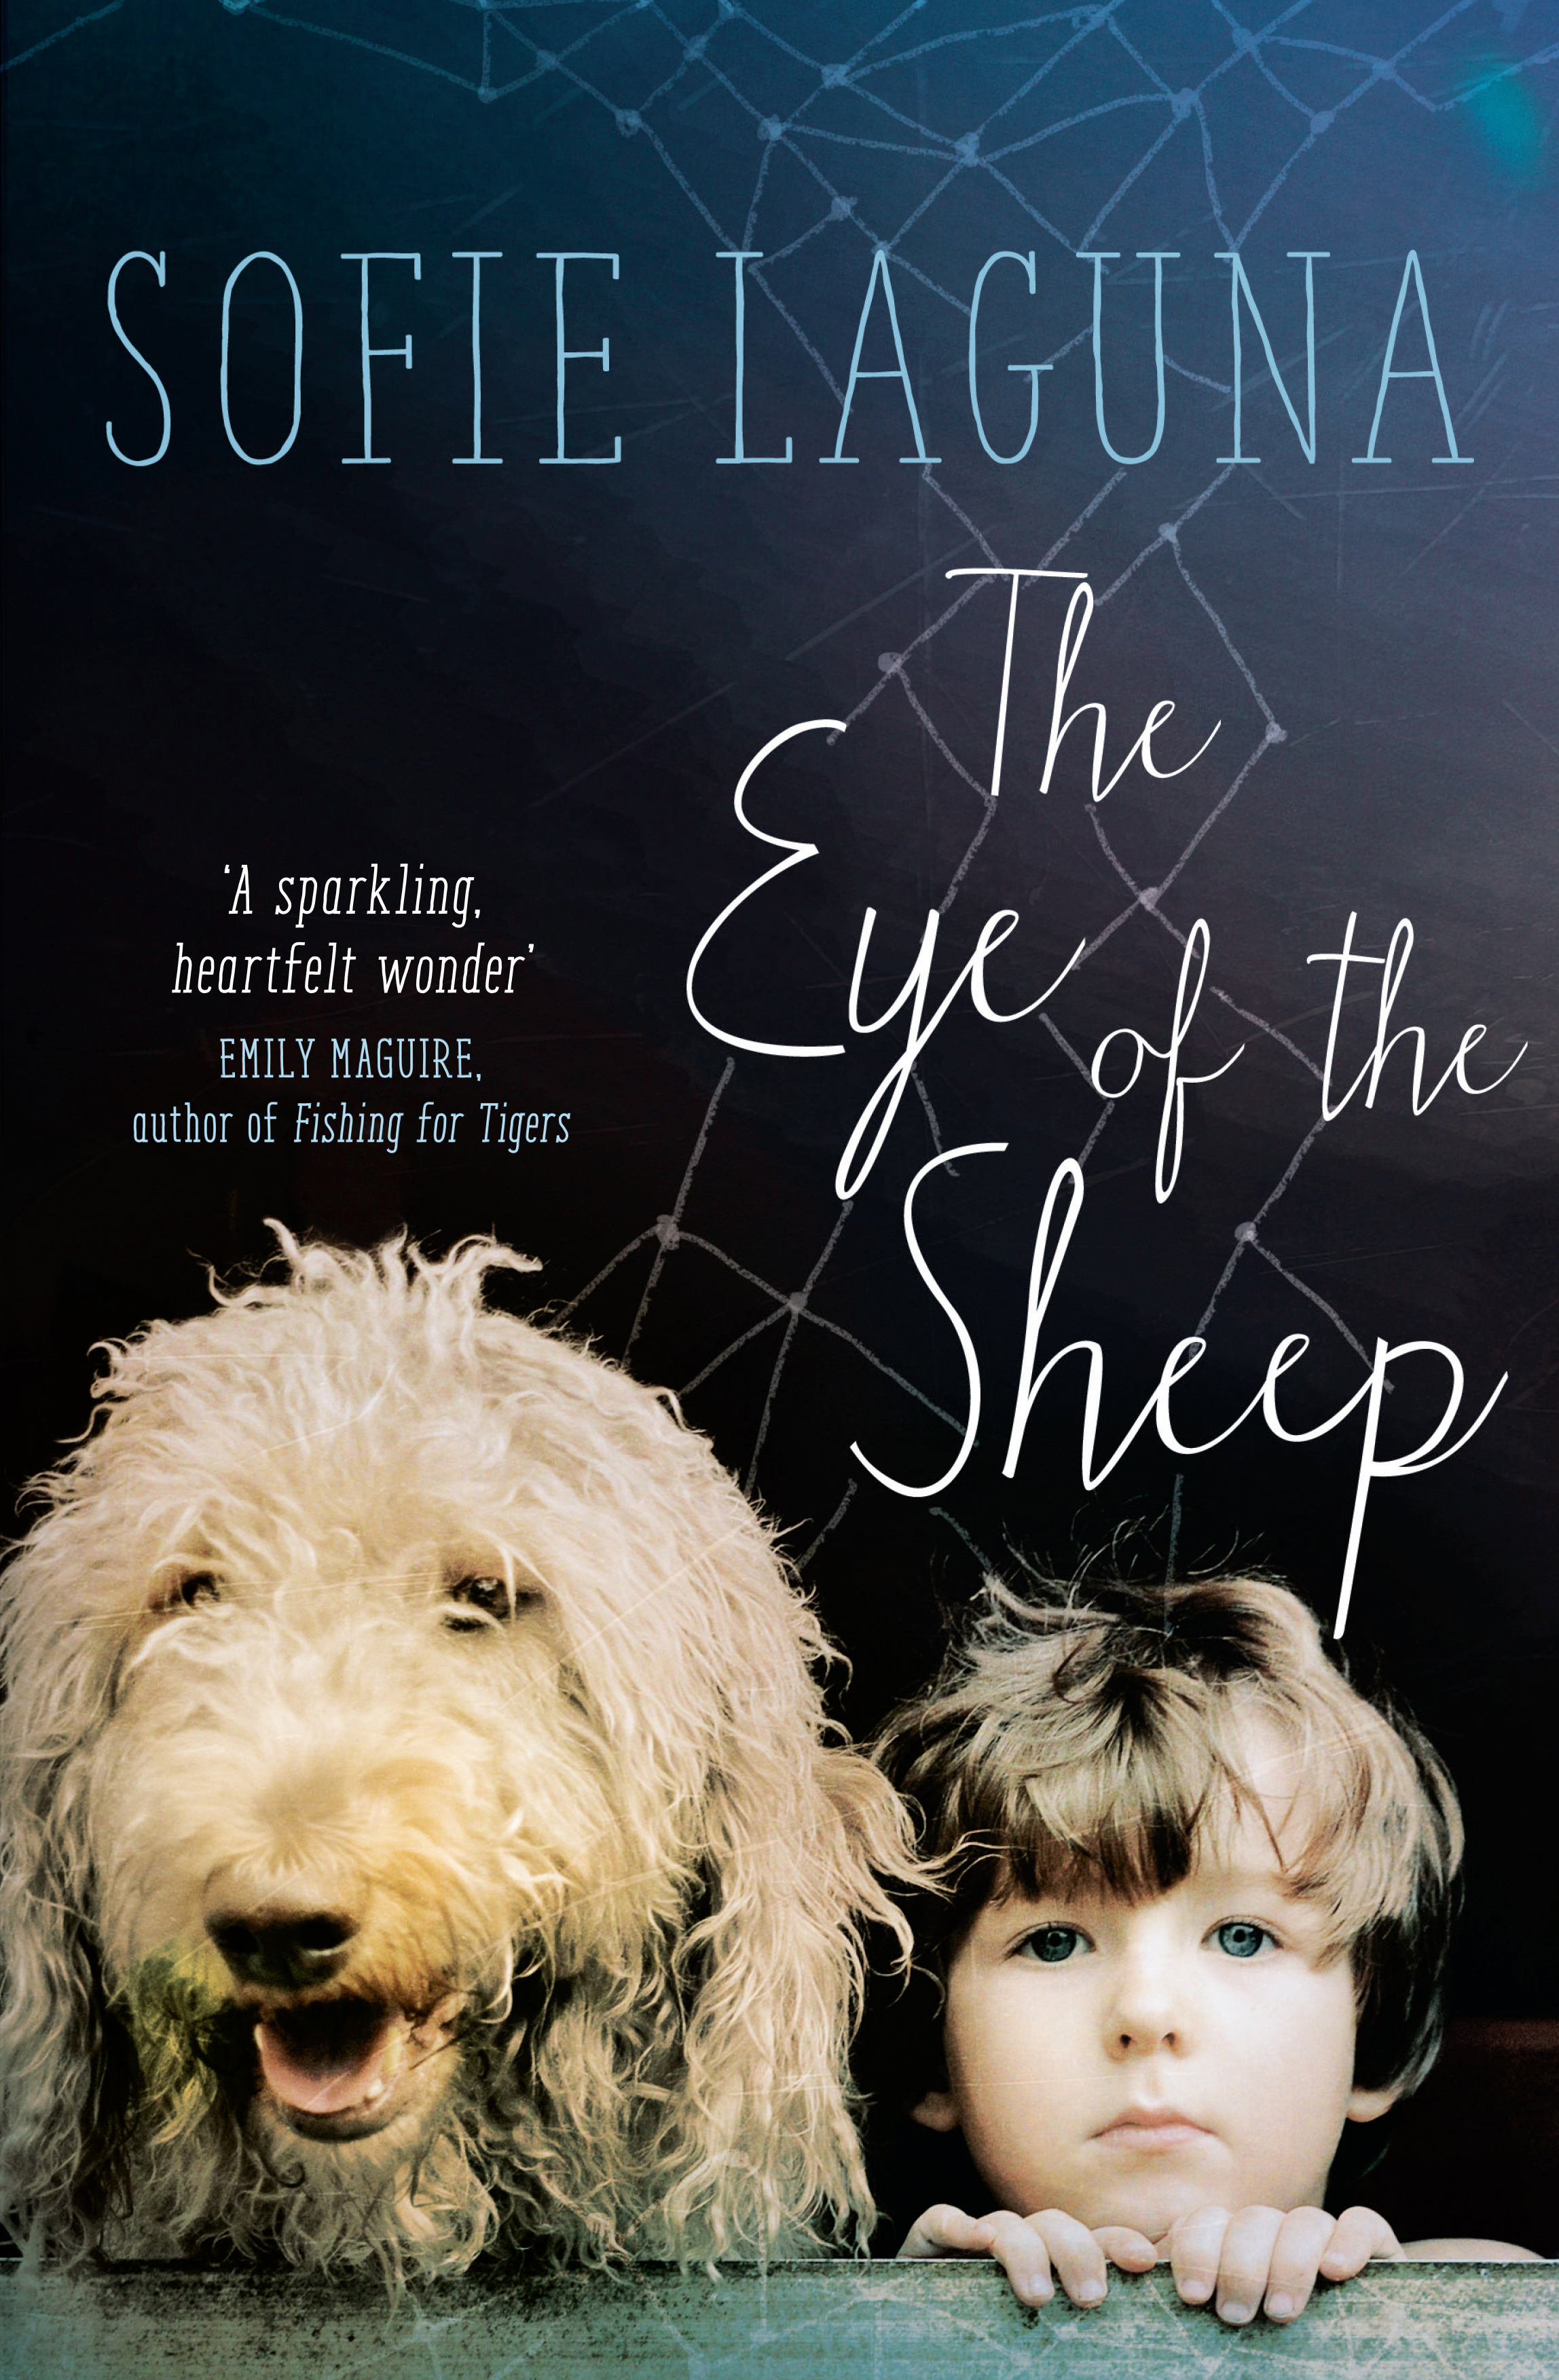 Cover Art for The Eye of the Sheep, ISBN: 9781743319598